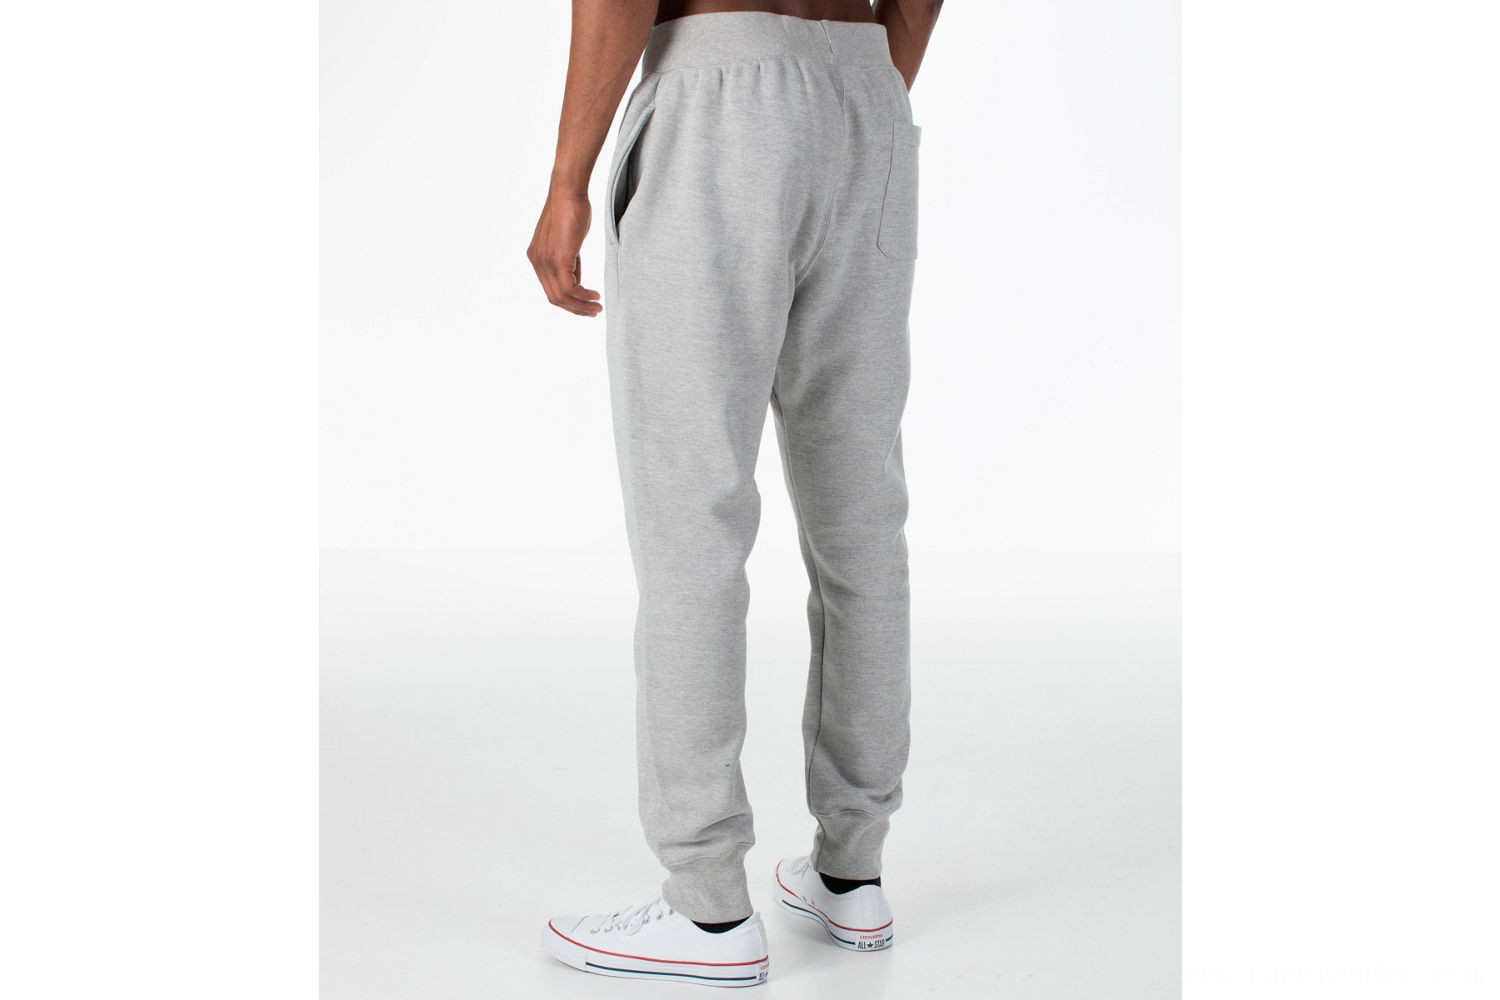 Champion Men's Reverse Weave Jogger Pants - Grey/White